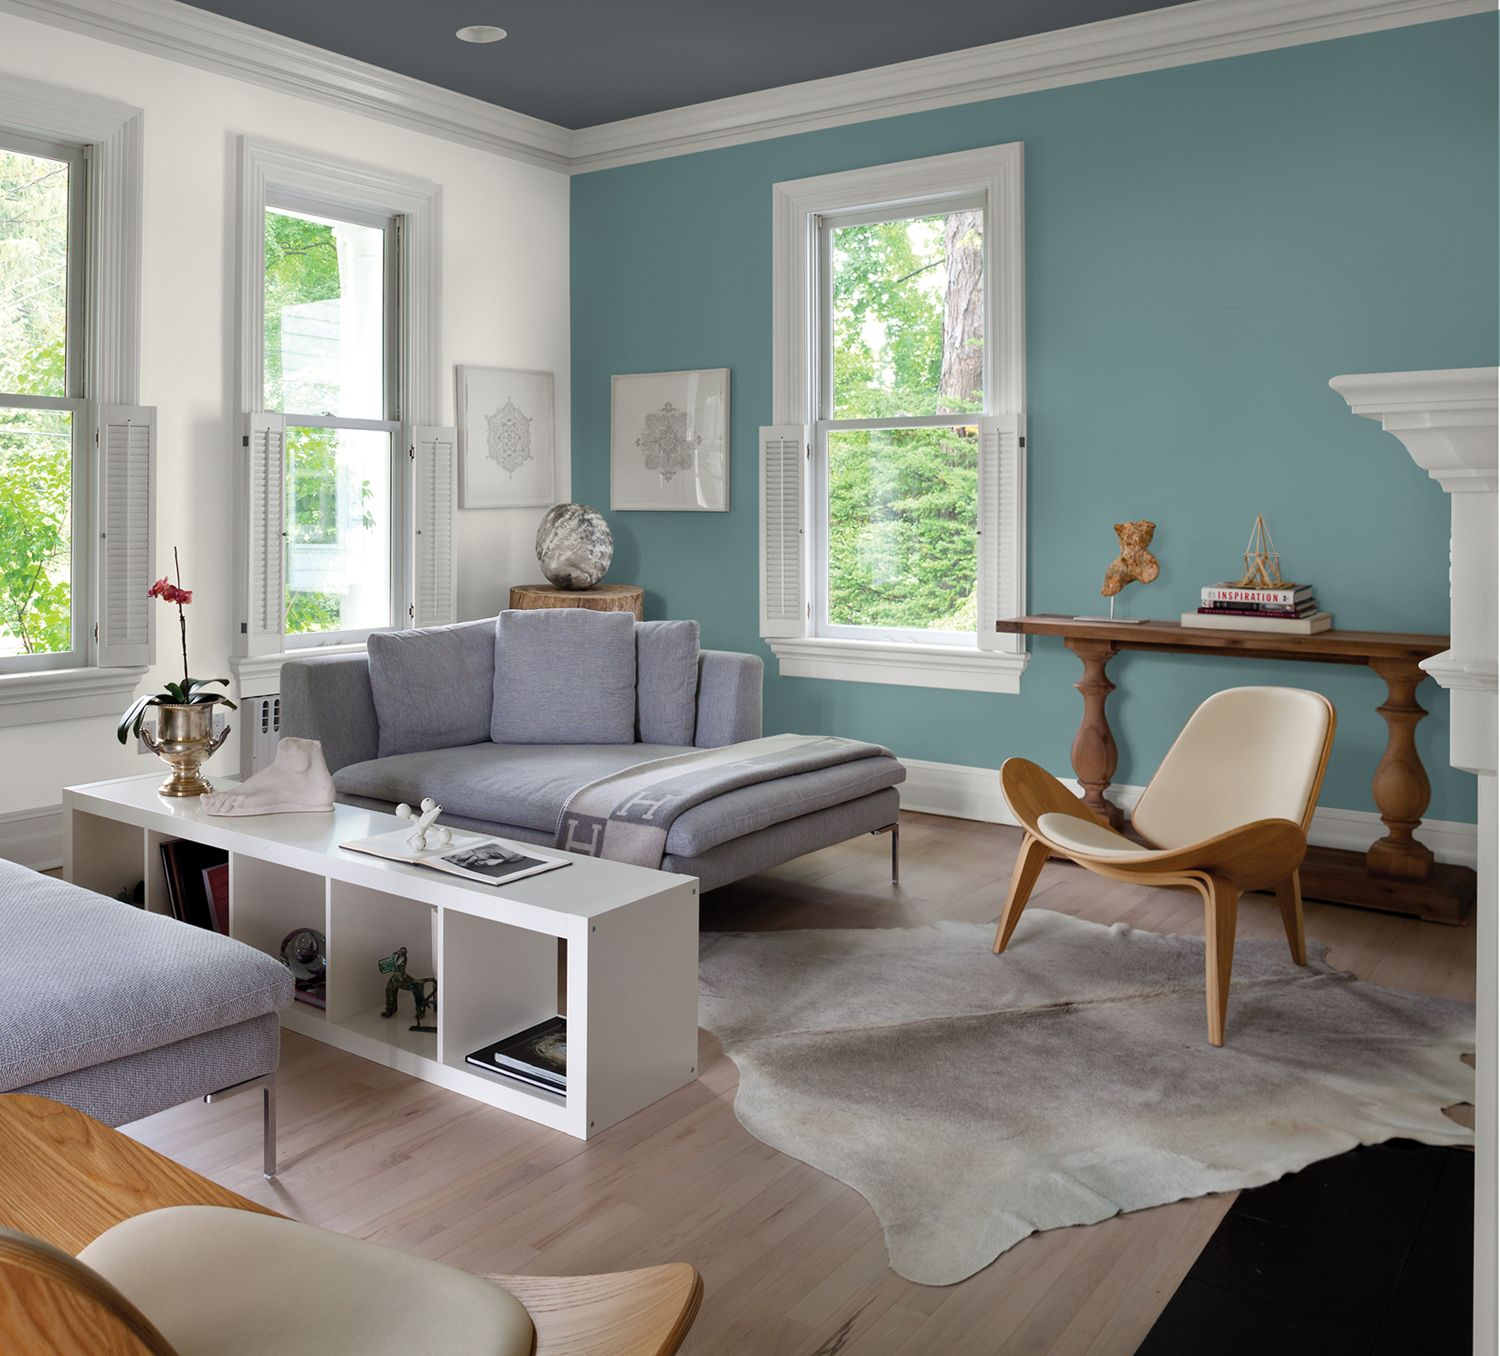 Les 25 meilleures id es de la cat gorie peinture sico sur - Trending paint colors for living rooms 2016 ...